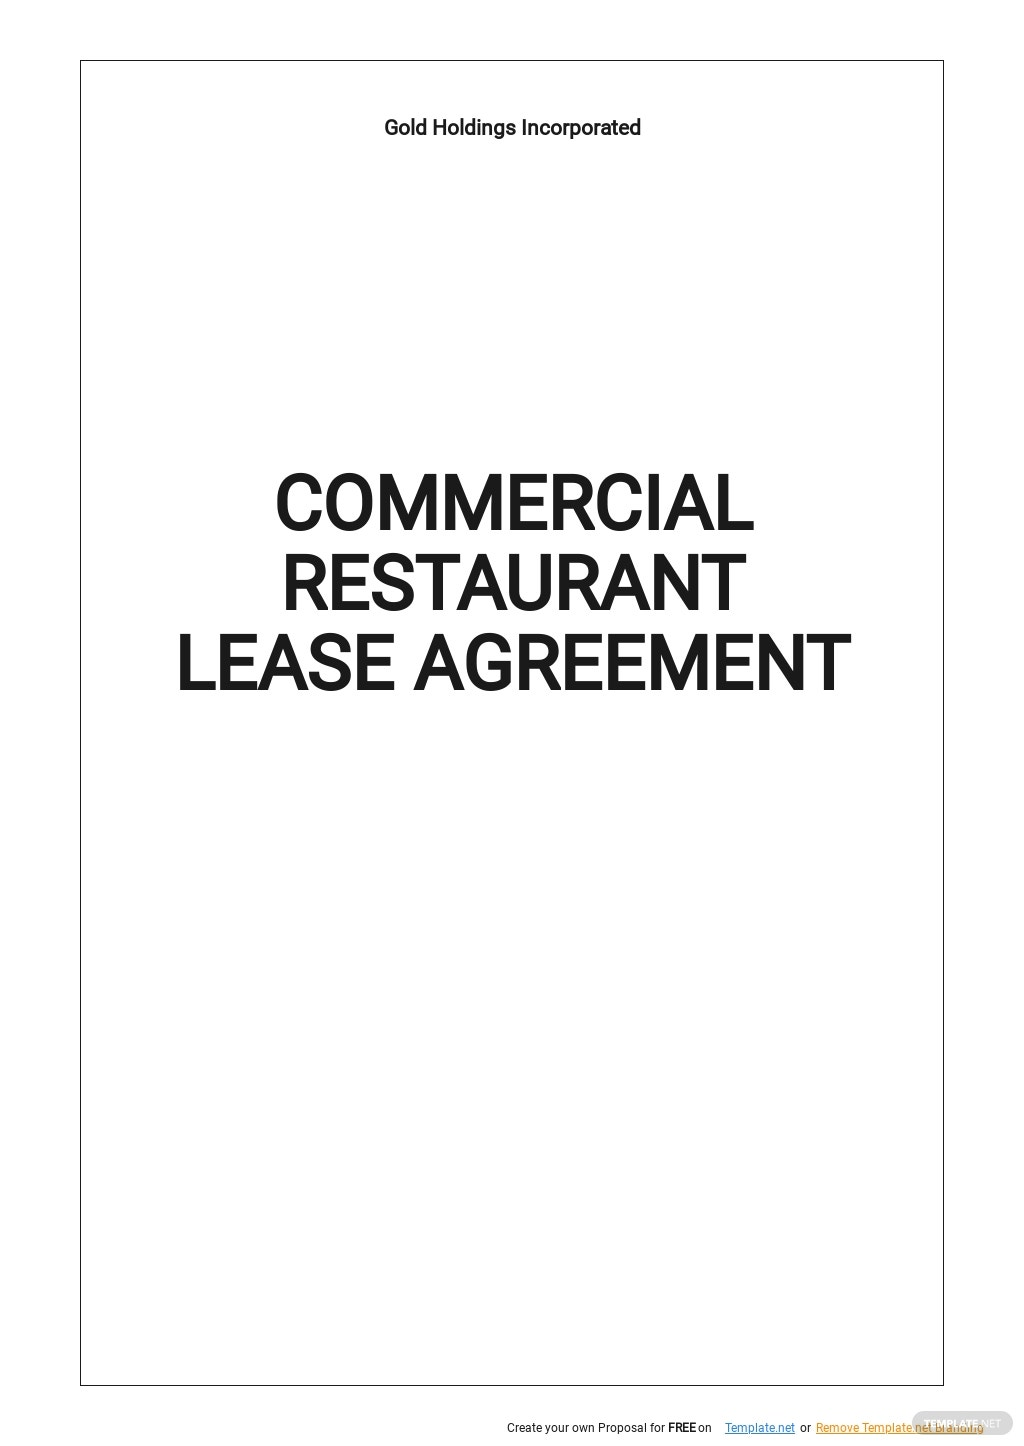 Commercial Restaurant Lease Agreement Template.jpe